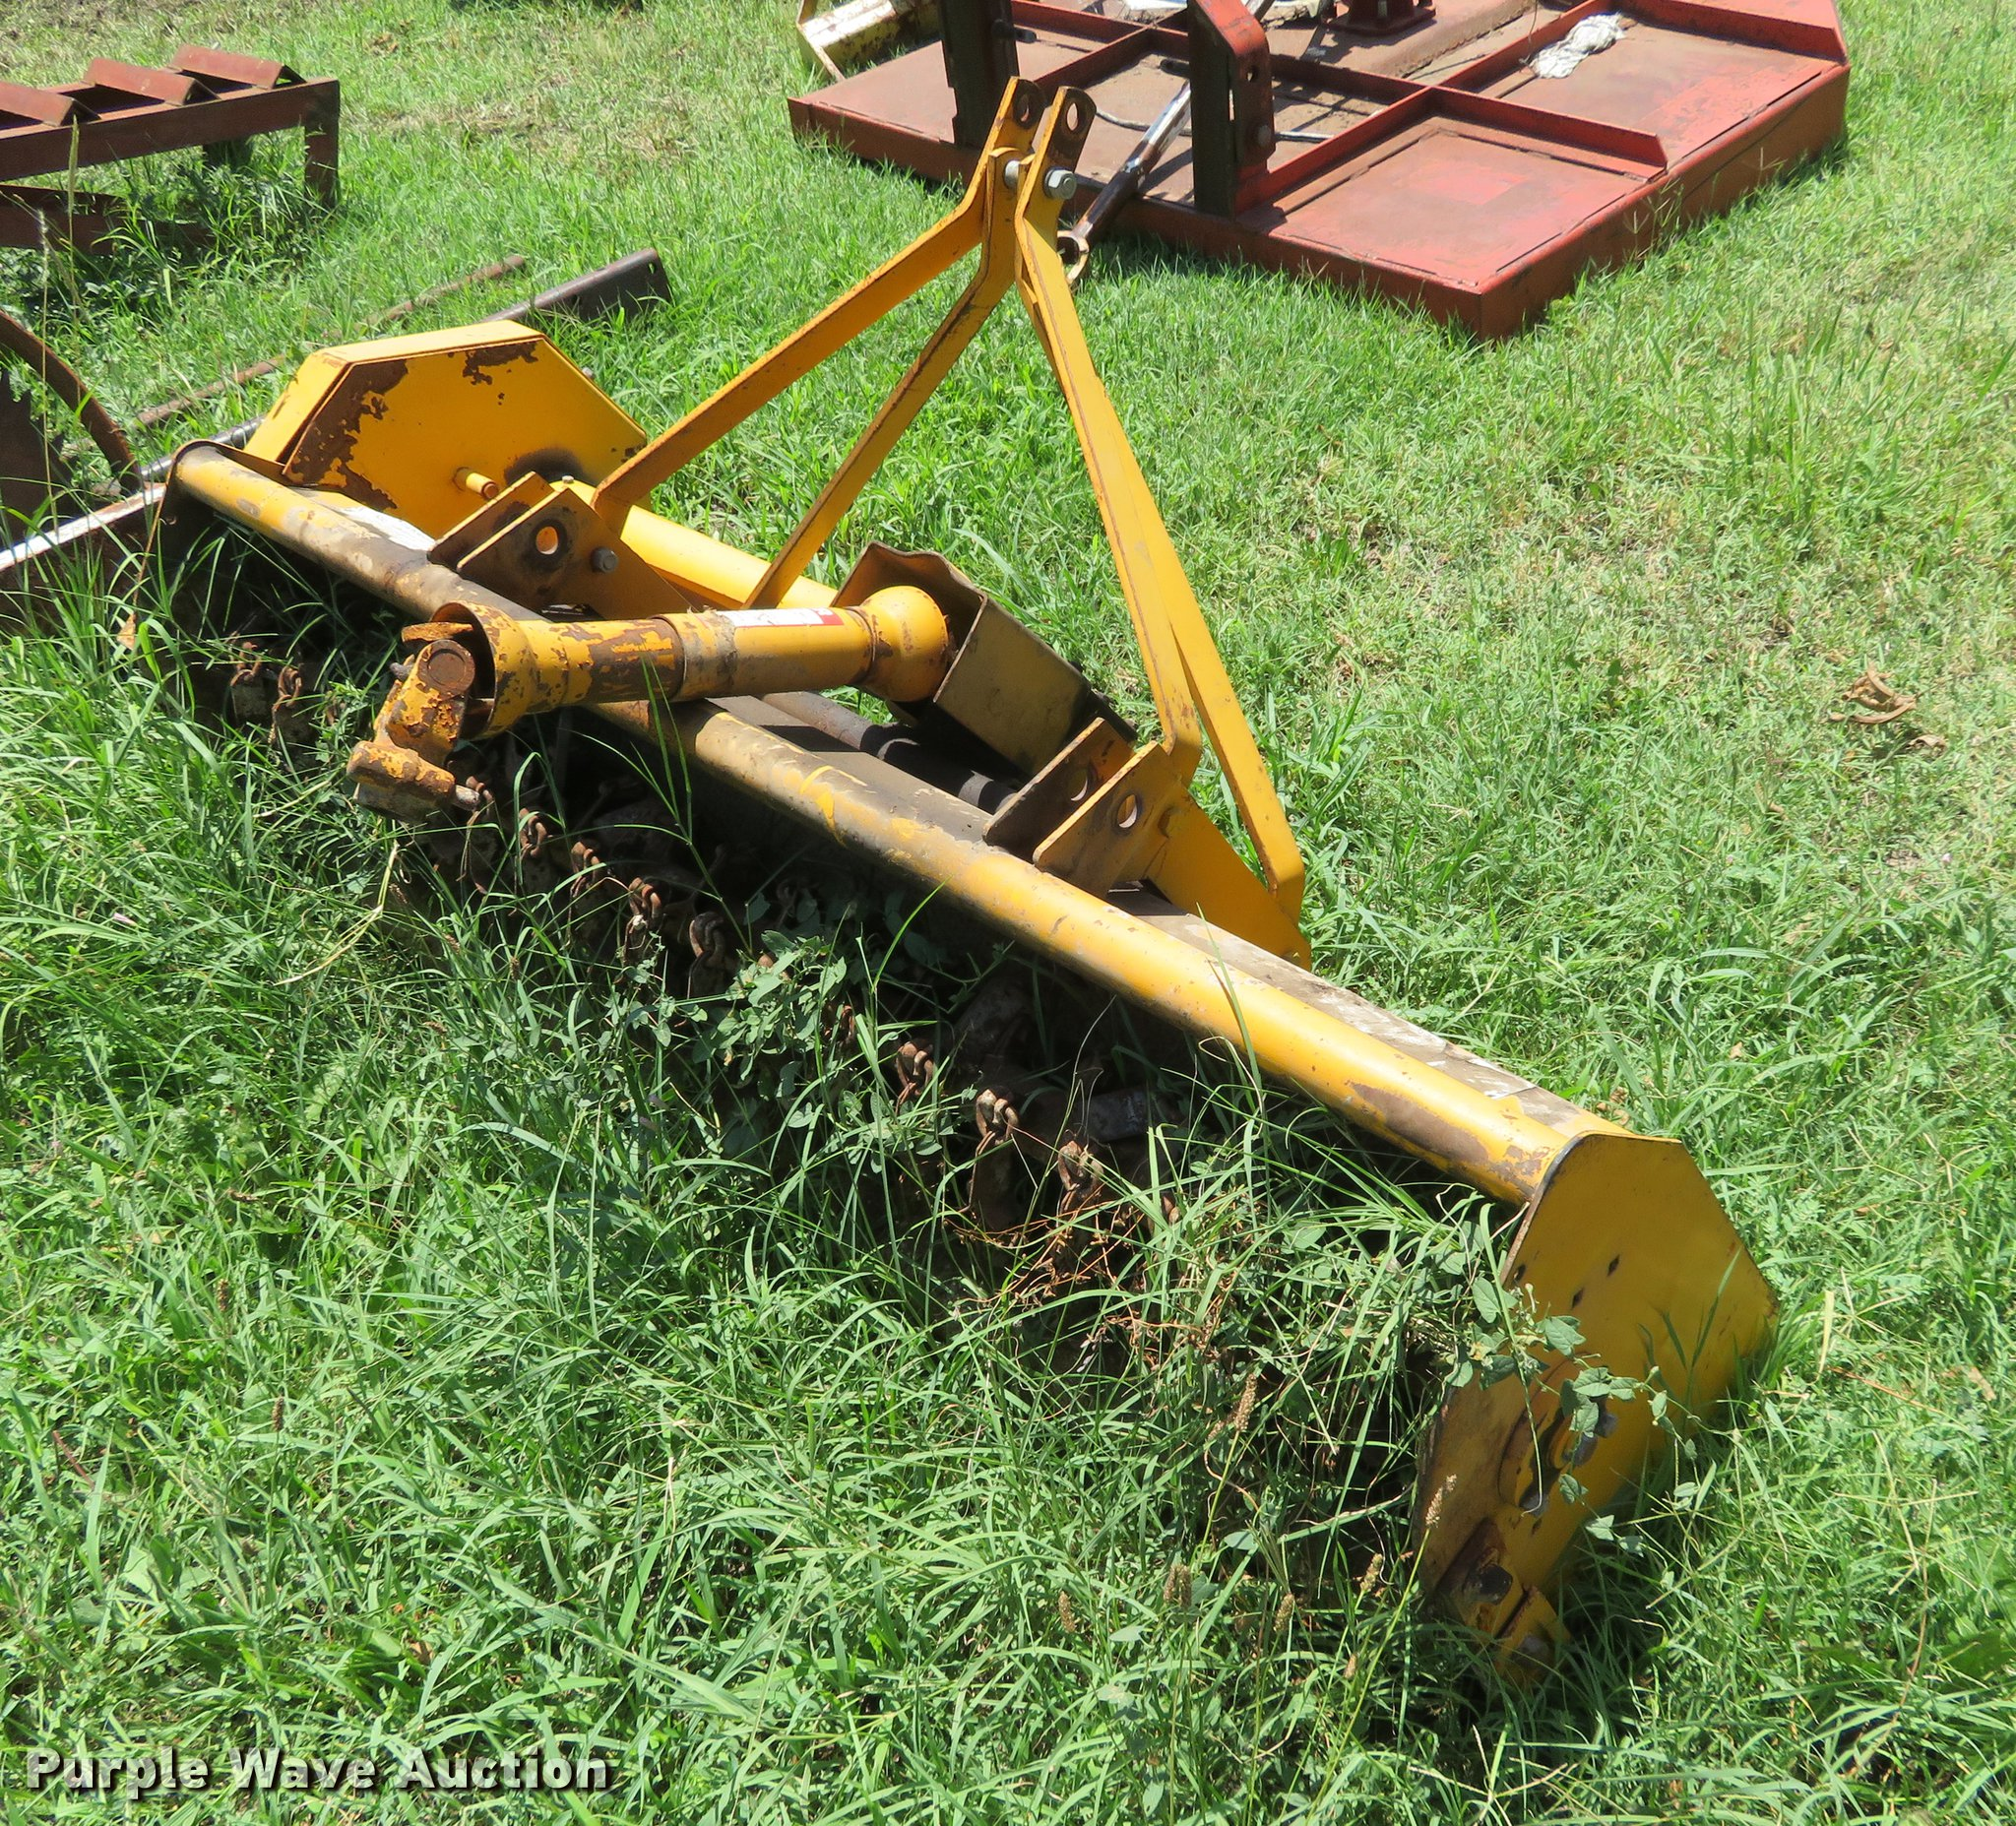 Mott flail mower | Item EJ9707 | SOLD! August 1 Vehicles and